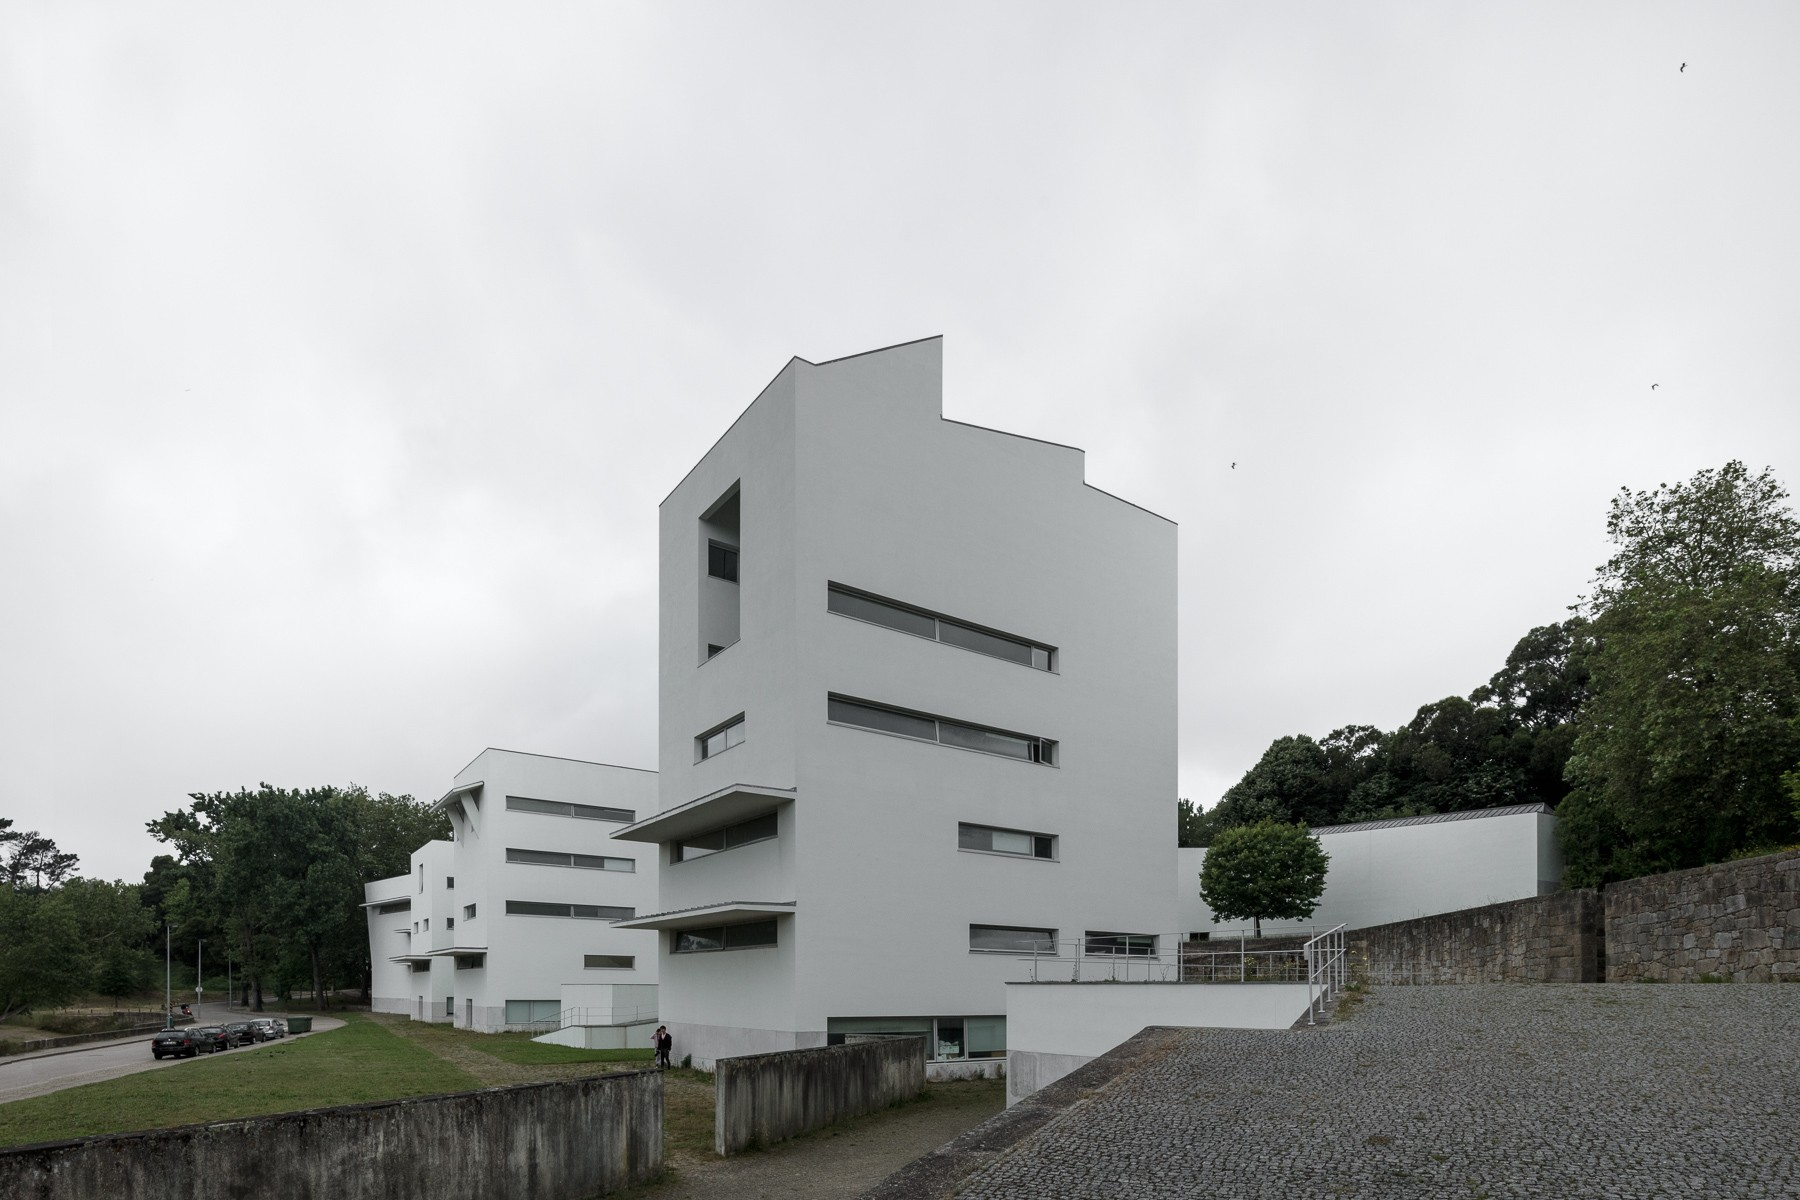 Architecture Faculty in Porto_Álvaro Siza